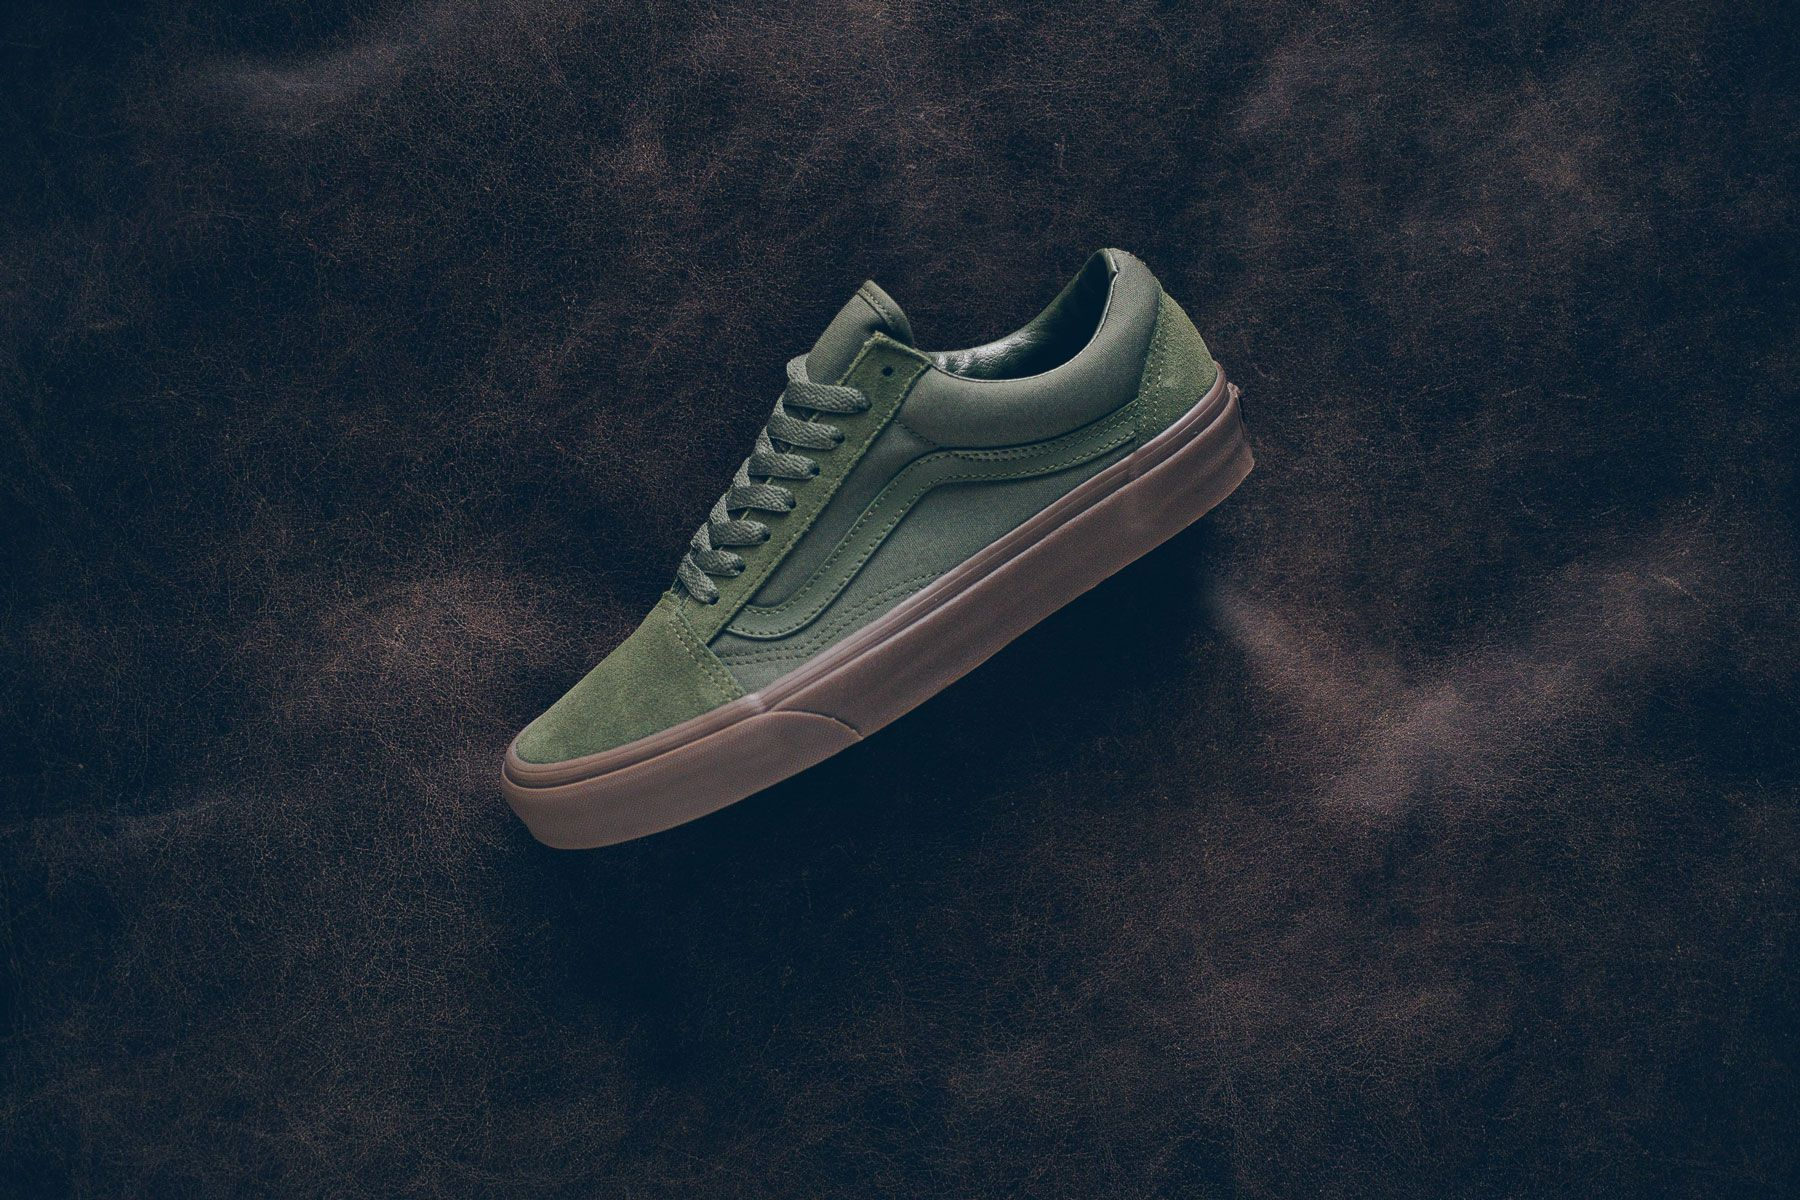 new arrive cheap for sale clearance prices Vans Old Skool Silhouette Receives An